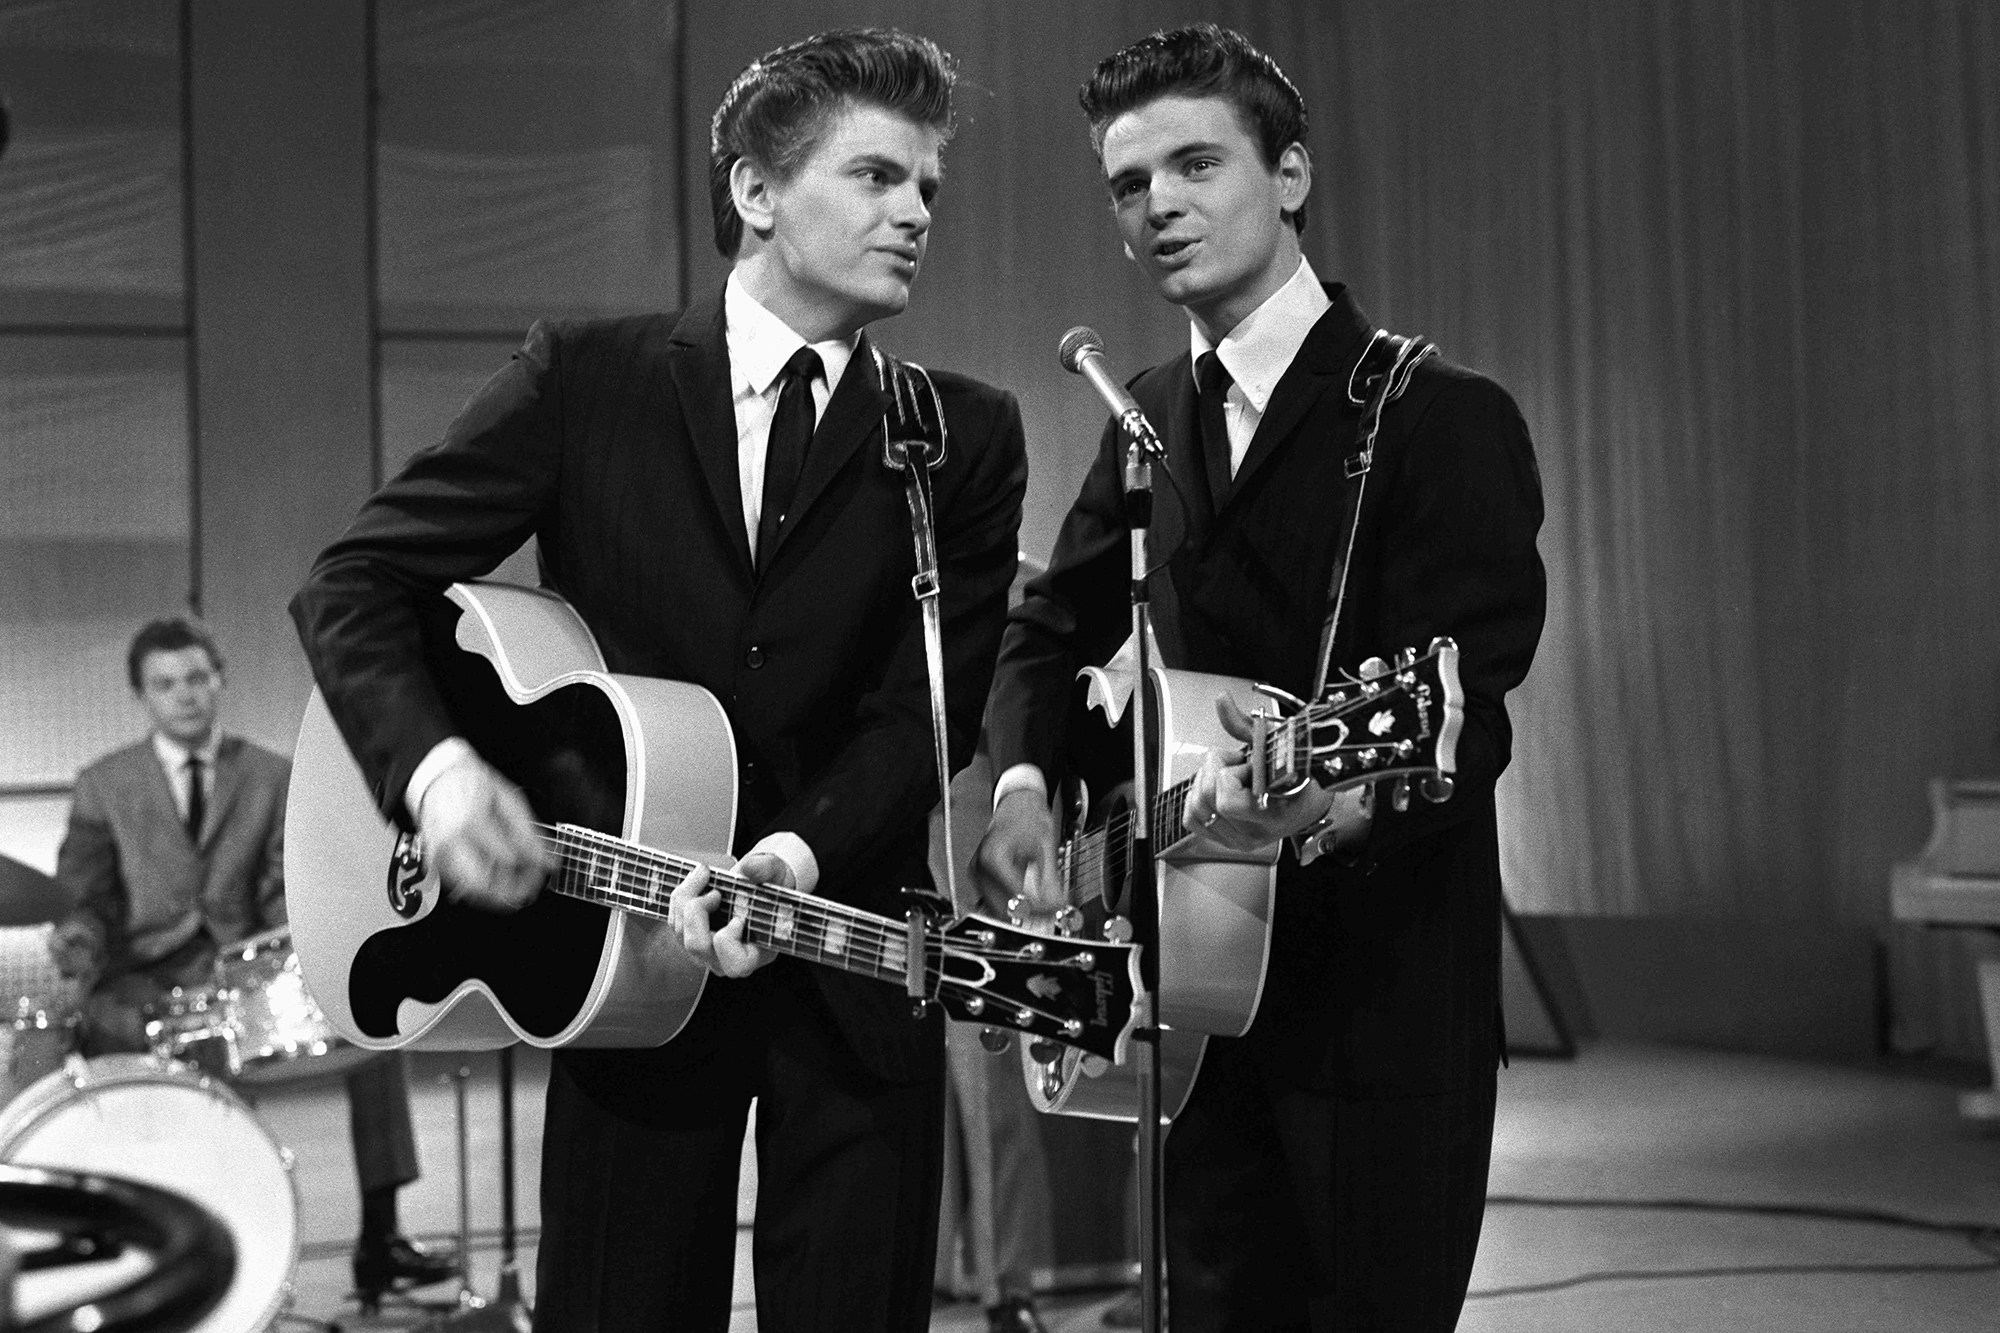 The Everly Brothers, (L-R) Phil Everly and Don Everly, performing on TV show, 1 April 1960.